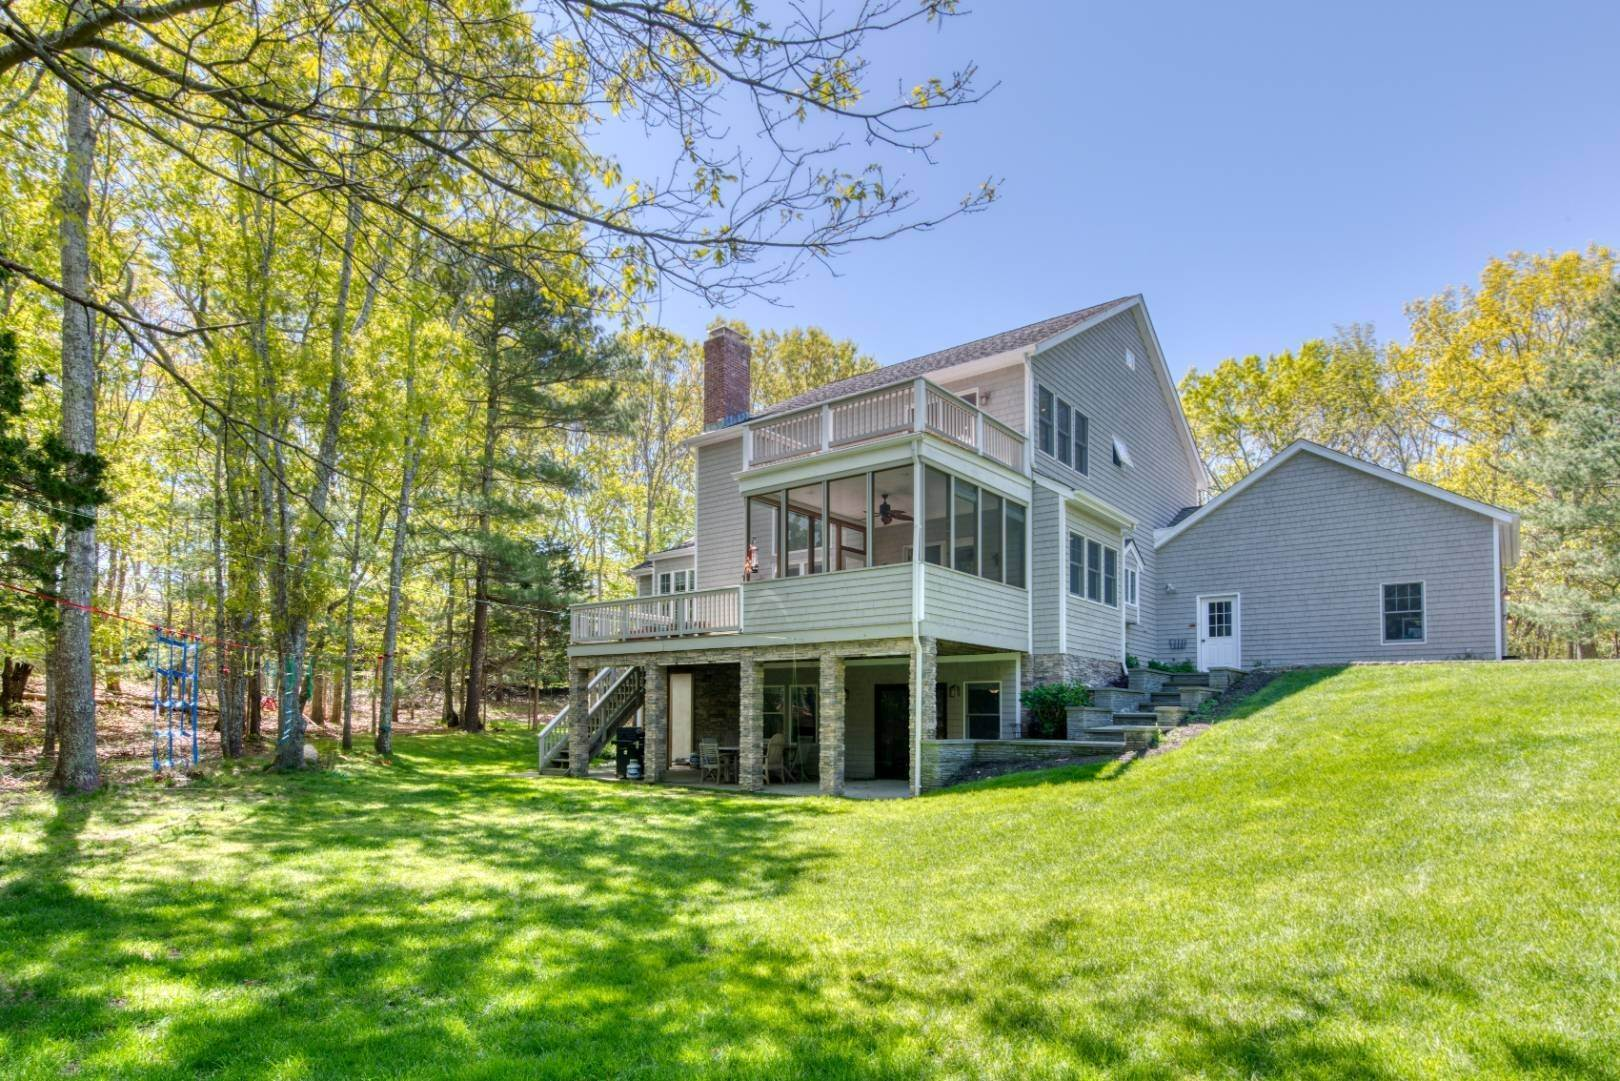 Single Family Home for Sale at Its Time To Call Sag Harbor Home 1 Rogers Ct, Sag Harbor, NY 11963